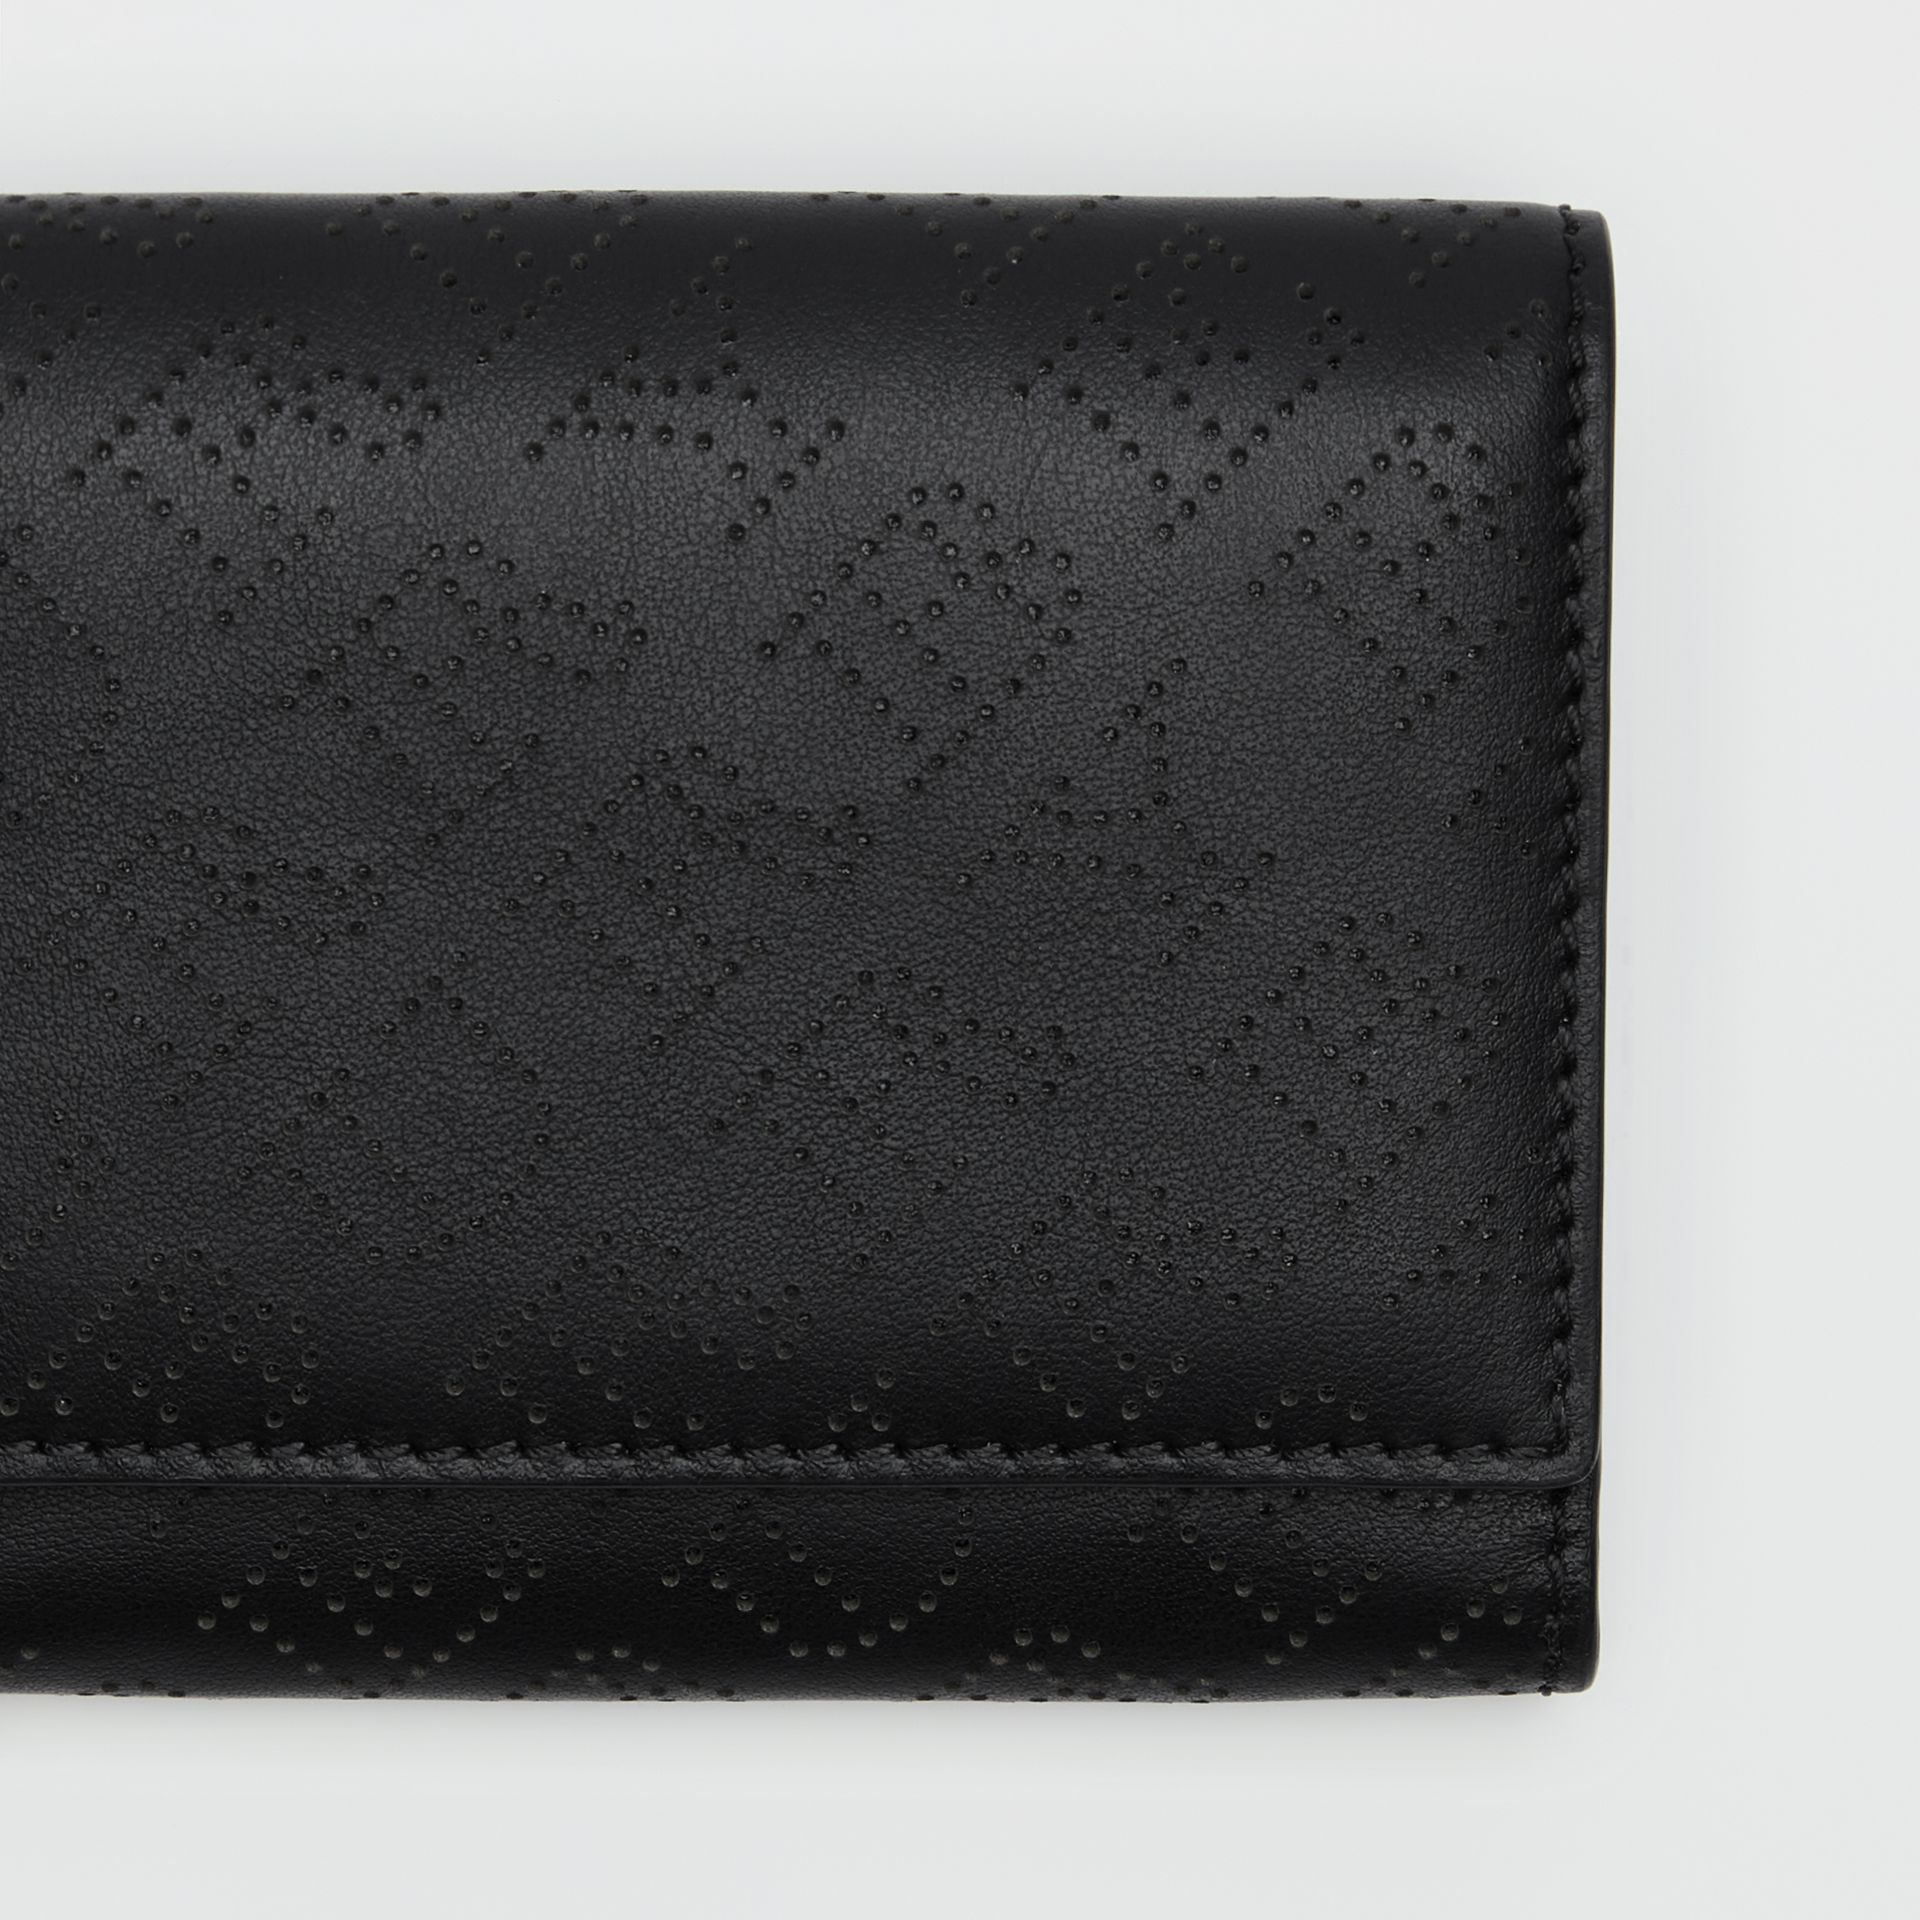 Small Perforated Logo Leather Wallet in Black - Women | Burberry - gallery image 1